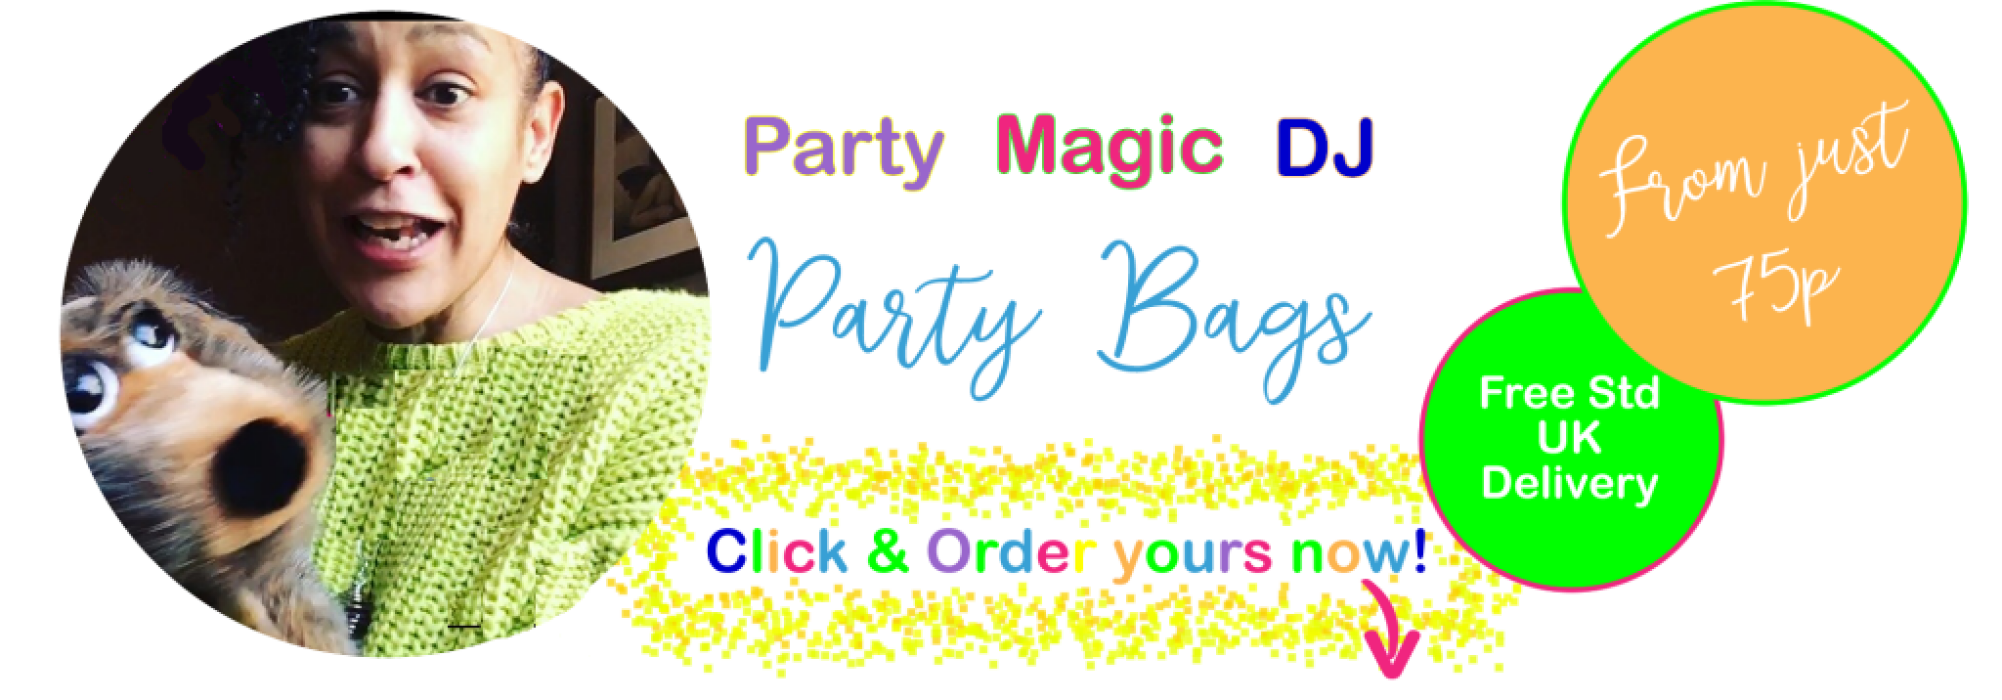 Party Magic DJ